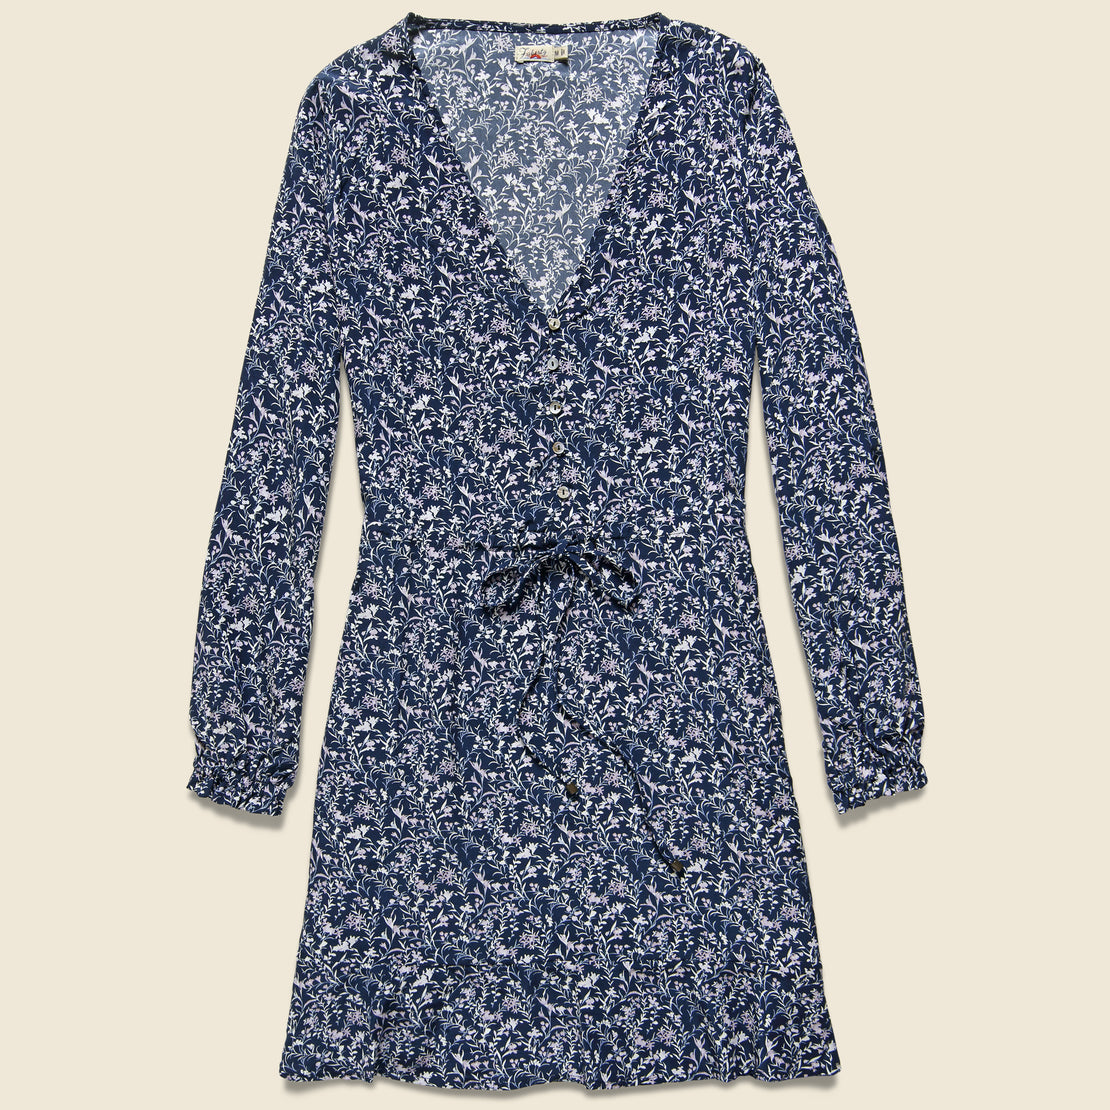 Faherty Kennedy Dress - Navy Bloom